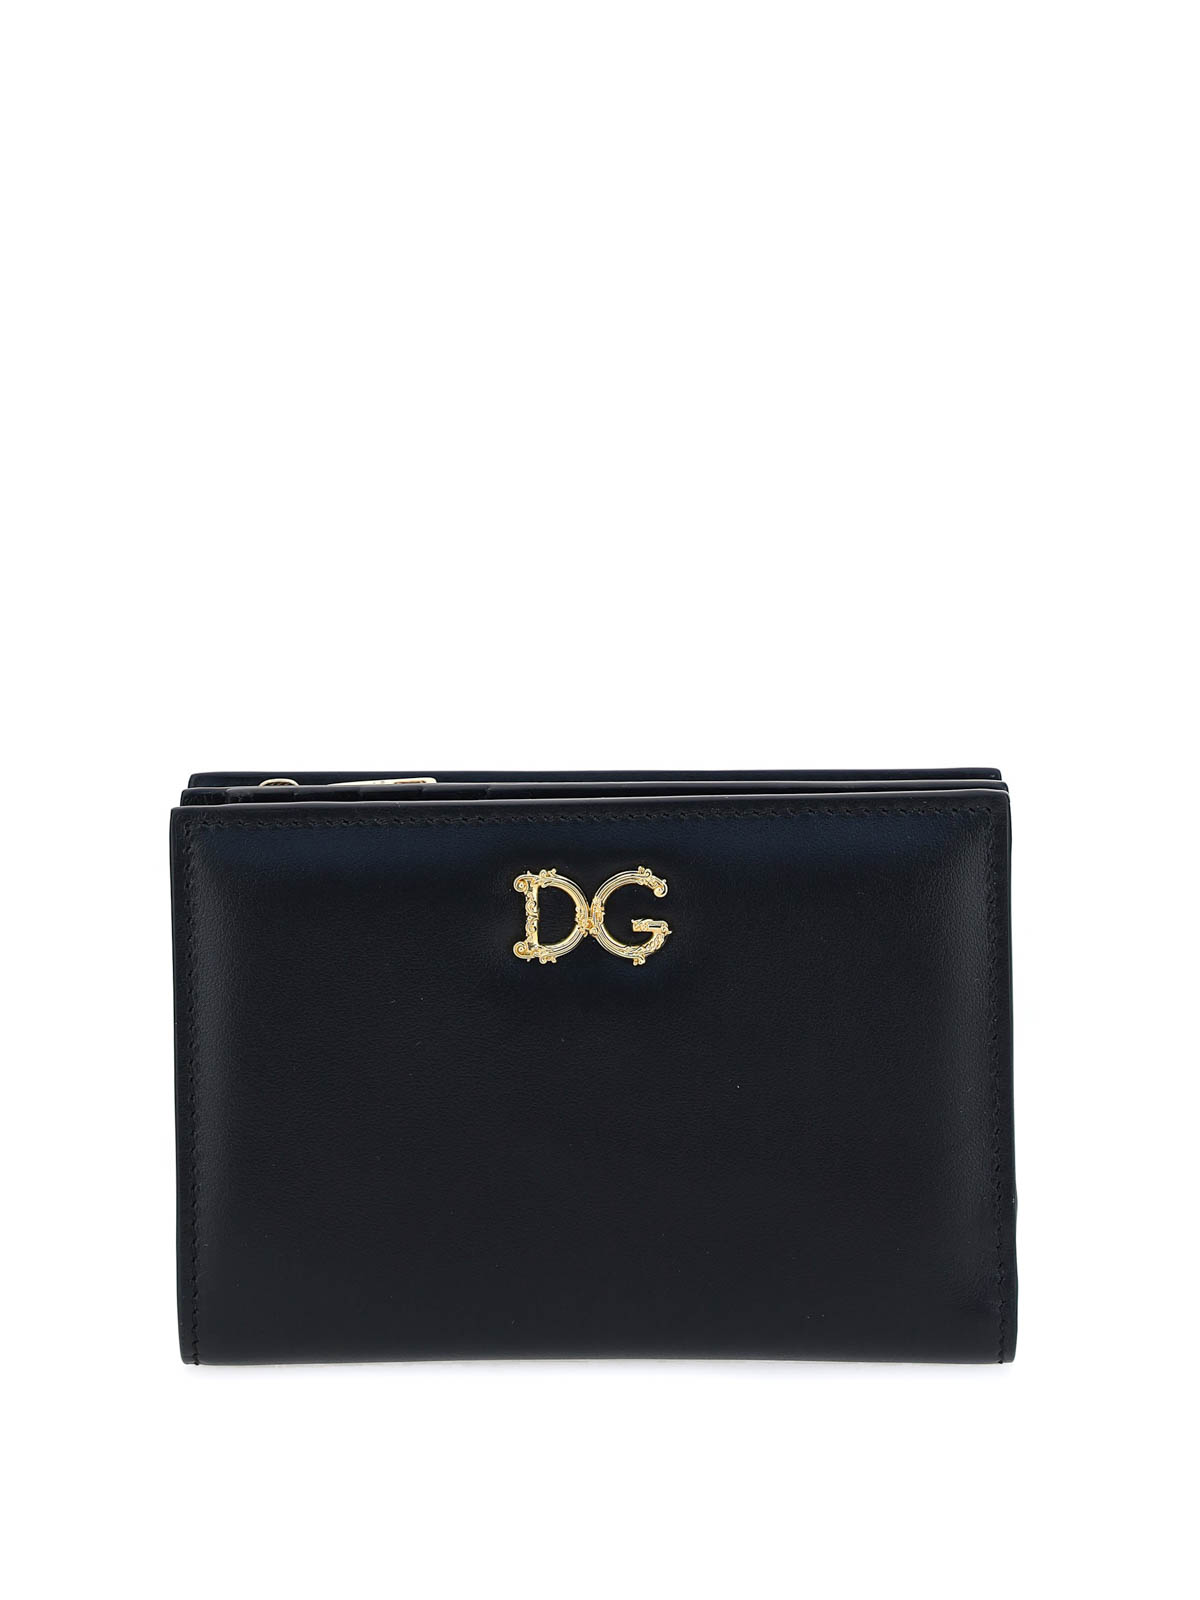 Dolce & Gabbana DG PLAQUE LEATHER WALLET